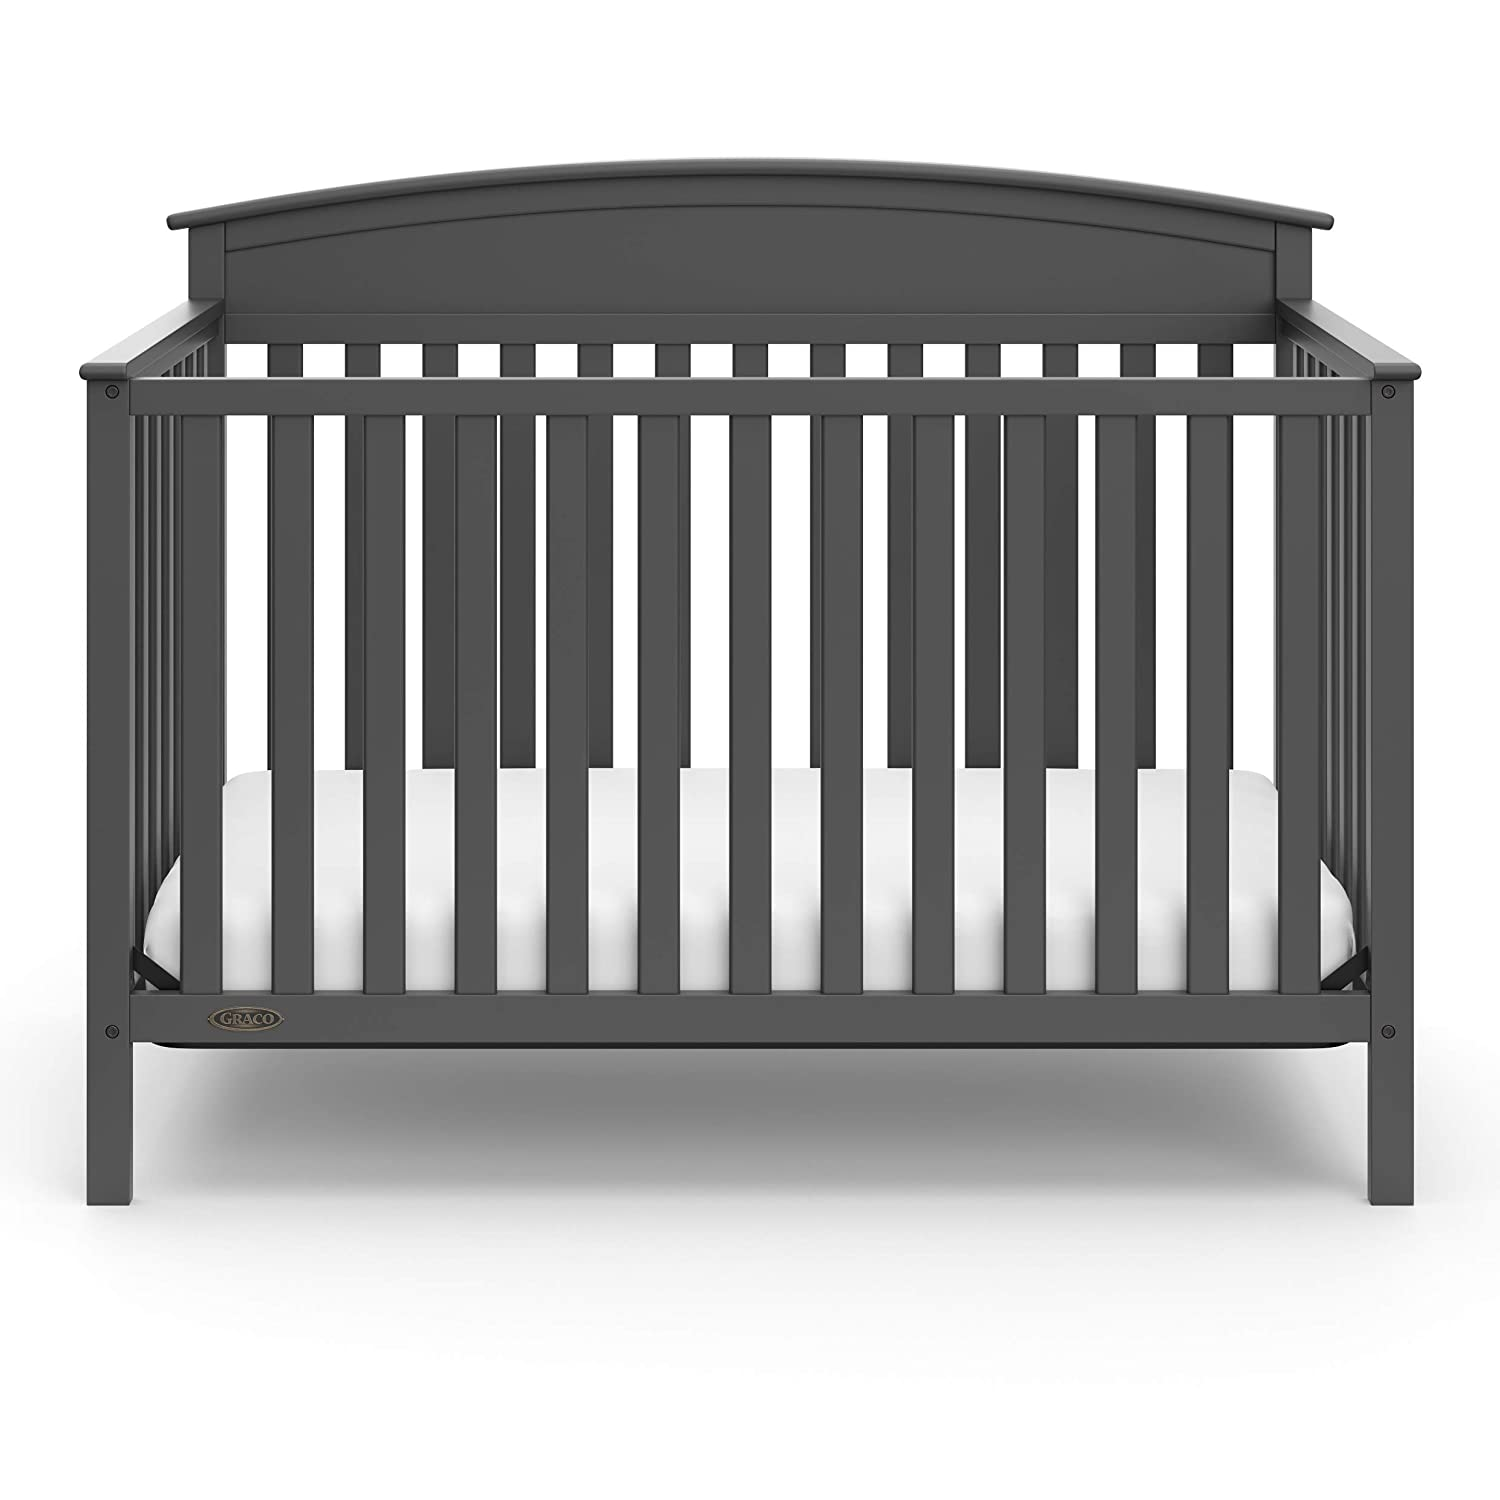 4 In 1 Baby Convertible Cribs White Crib Graco For Sale Best Bed